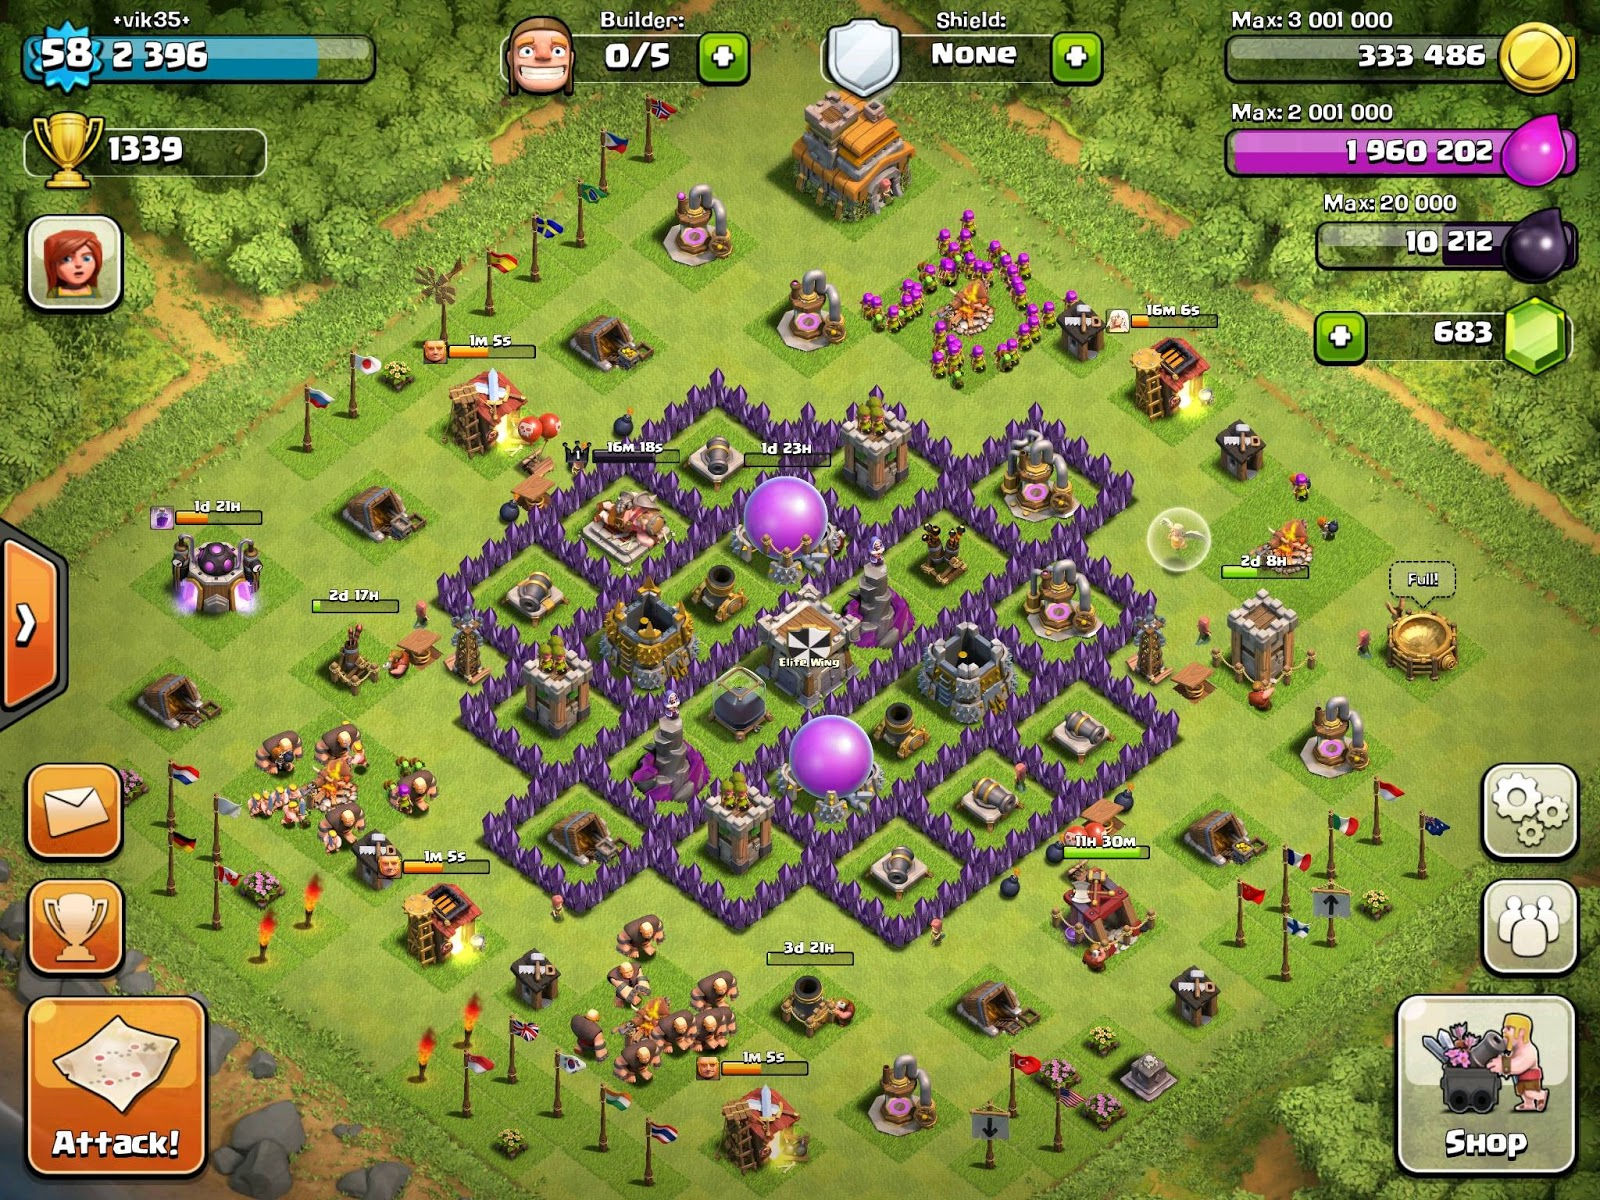 Clash of clans town hall level 7 farming base | 14+ Best TH7